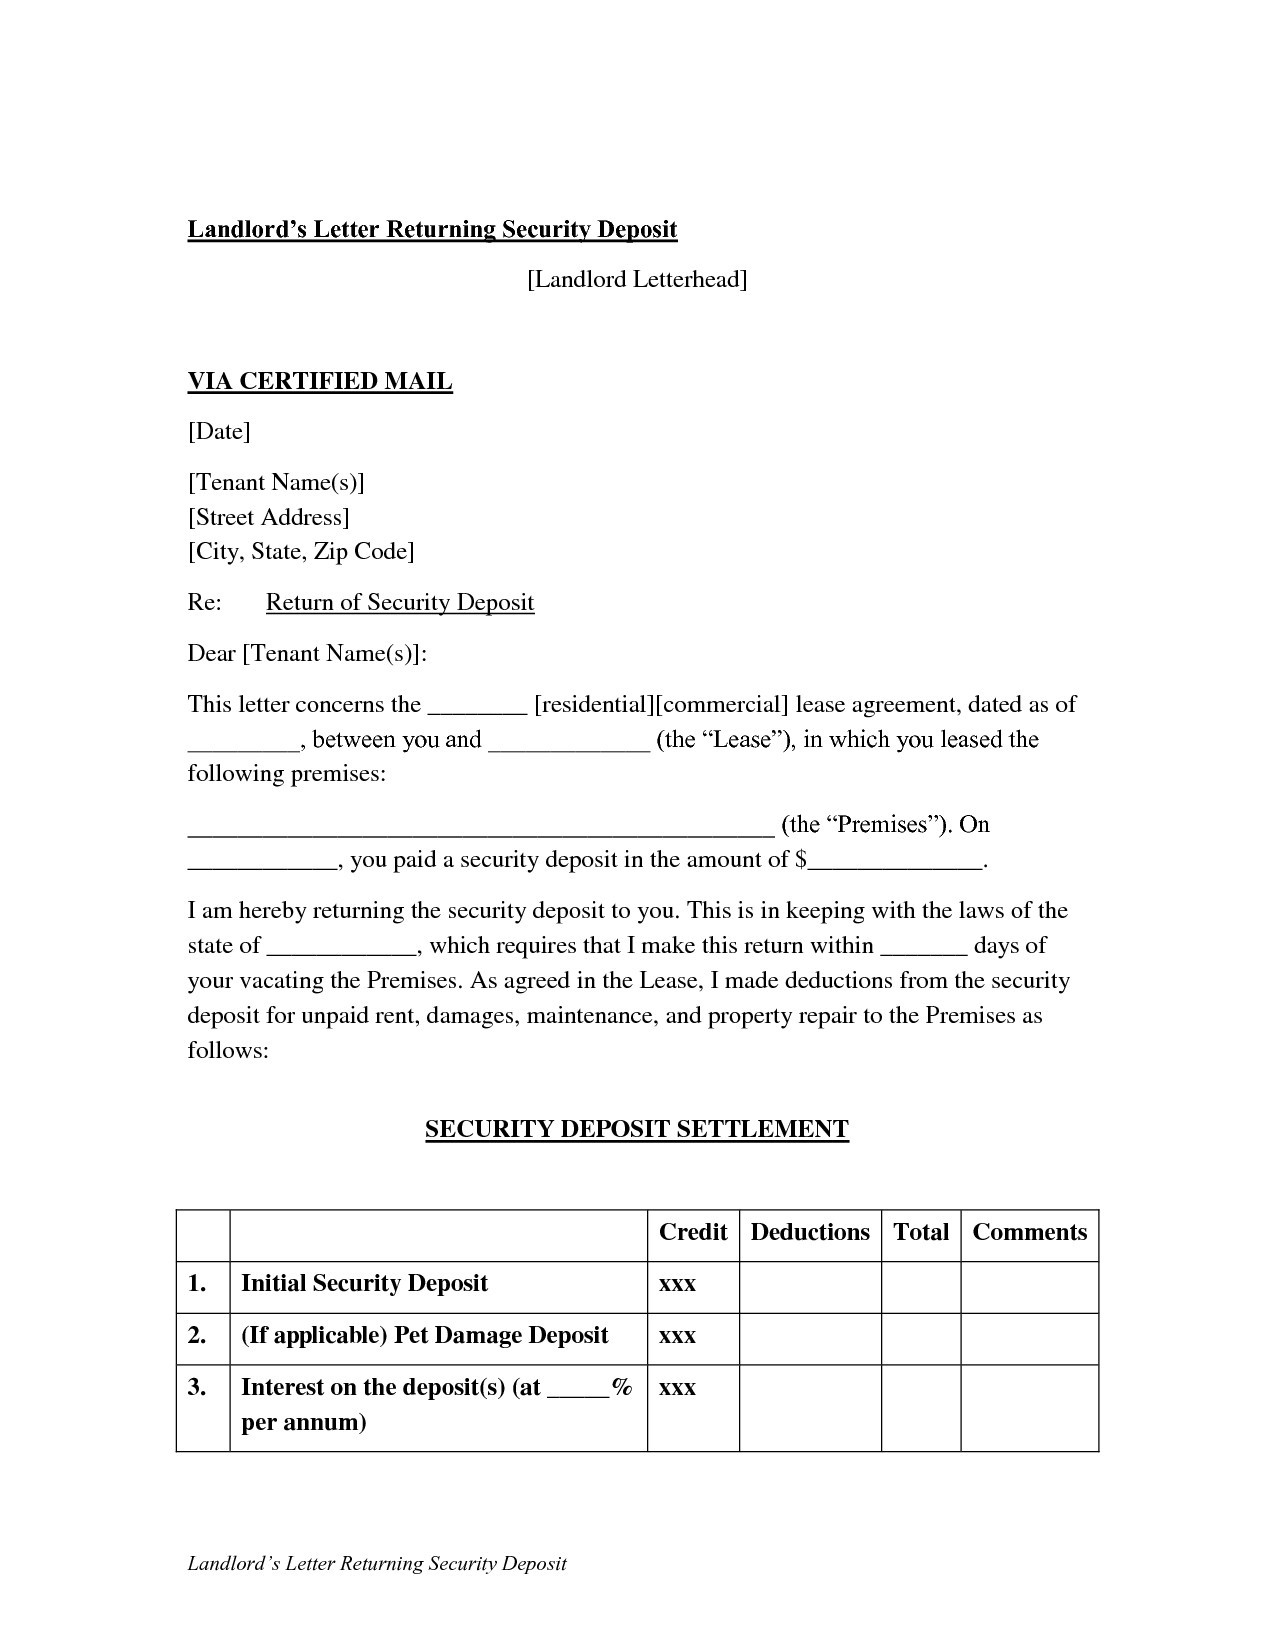 security deposit return letter template Collection-Landlord Letter Returning Security Deposit Sample Infoupdate Org 11-l